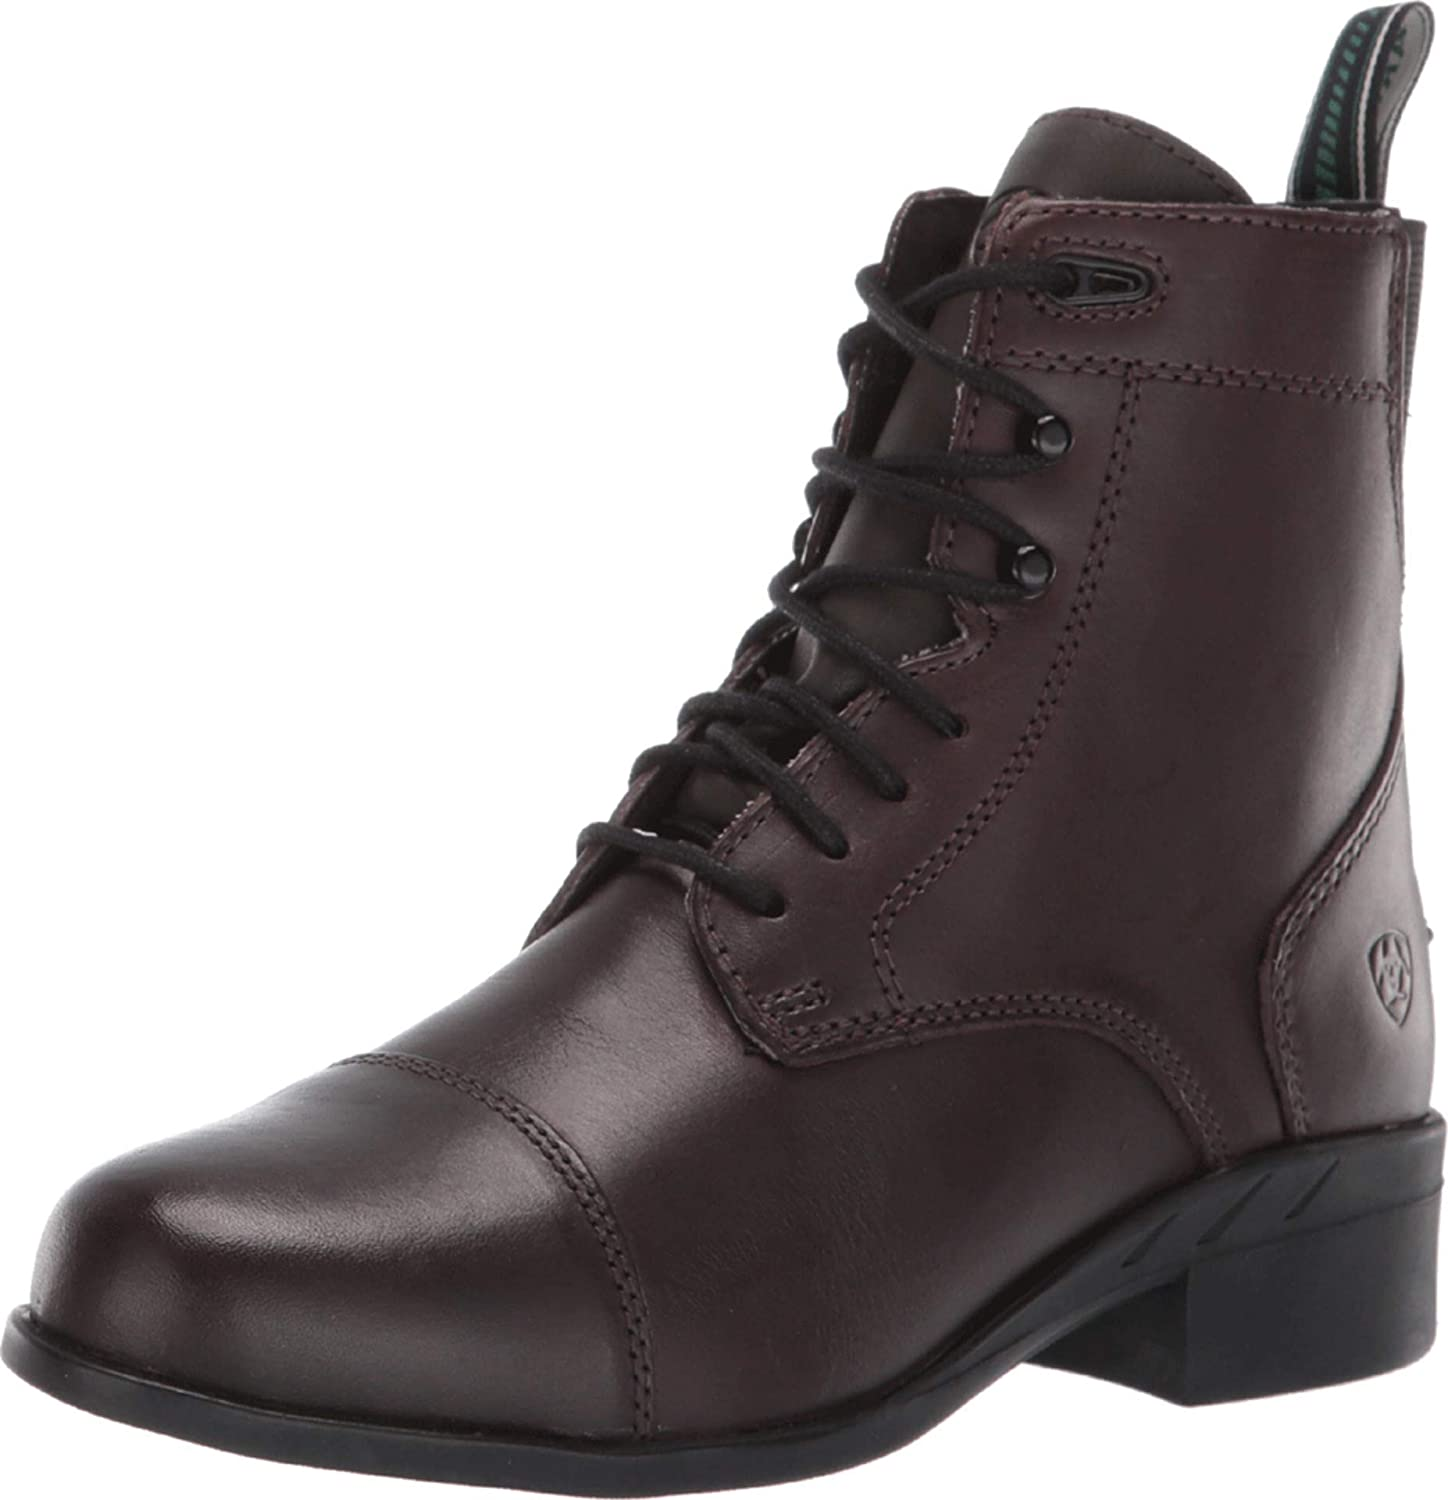 ARIAT Heritage Youth Performer IV Paddock Boots